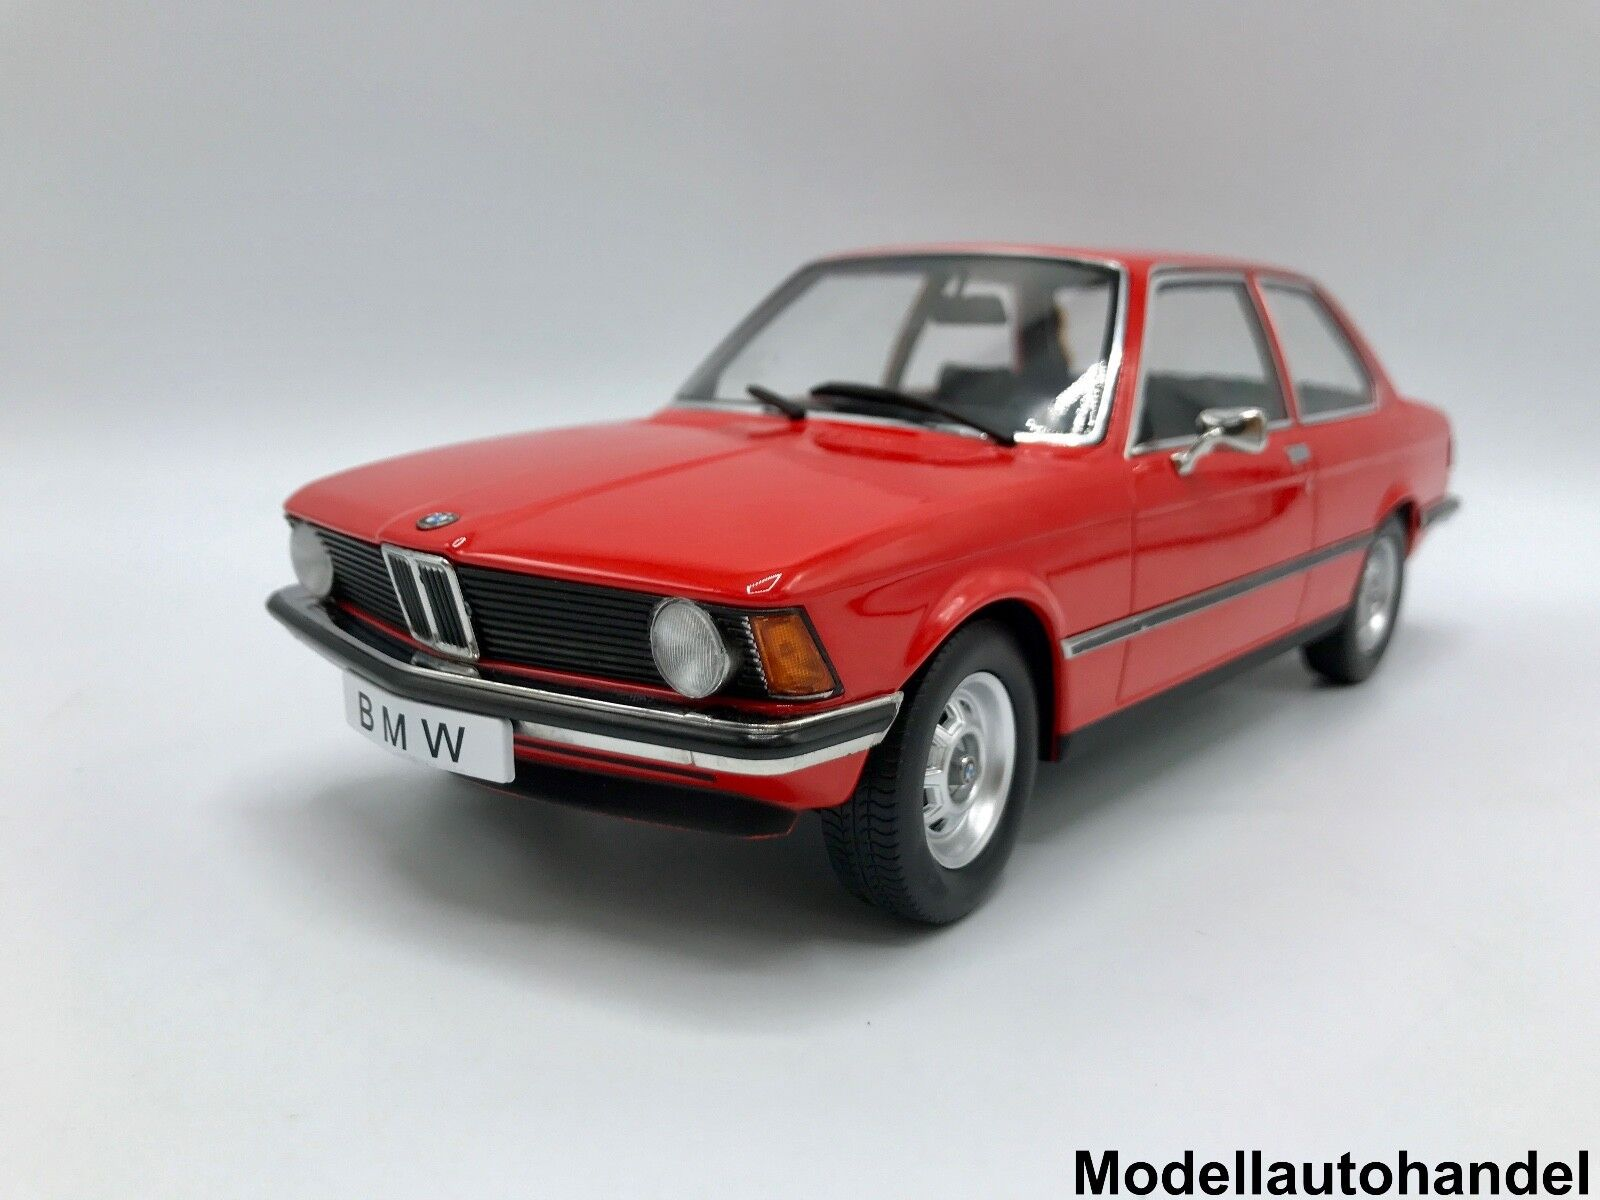 BMW 318i (e21) 1975-rojo - 1 18 KK-scale    NEW